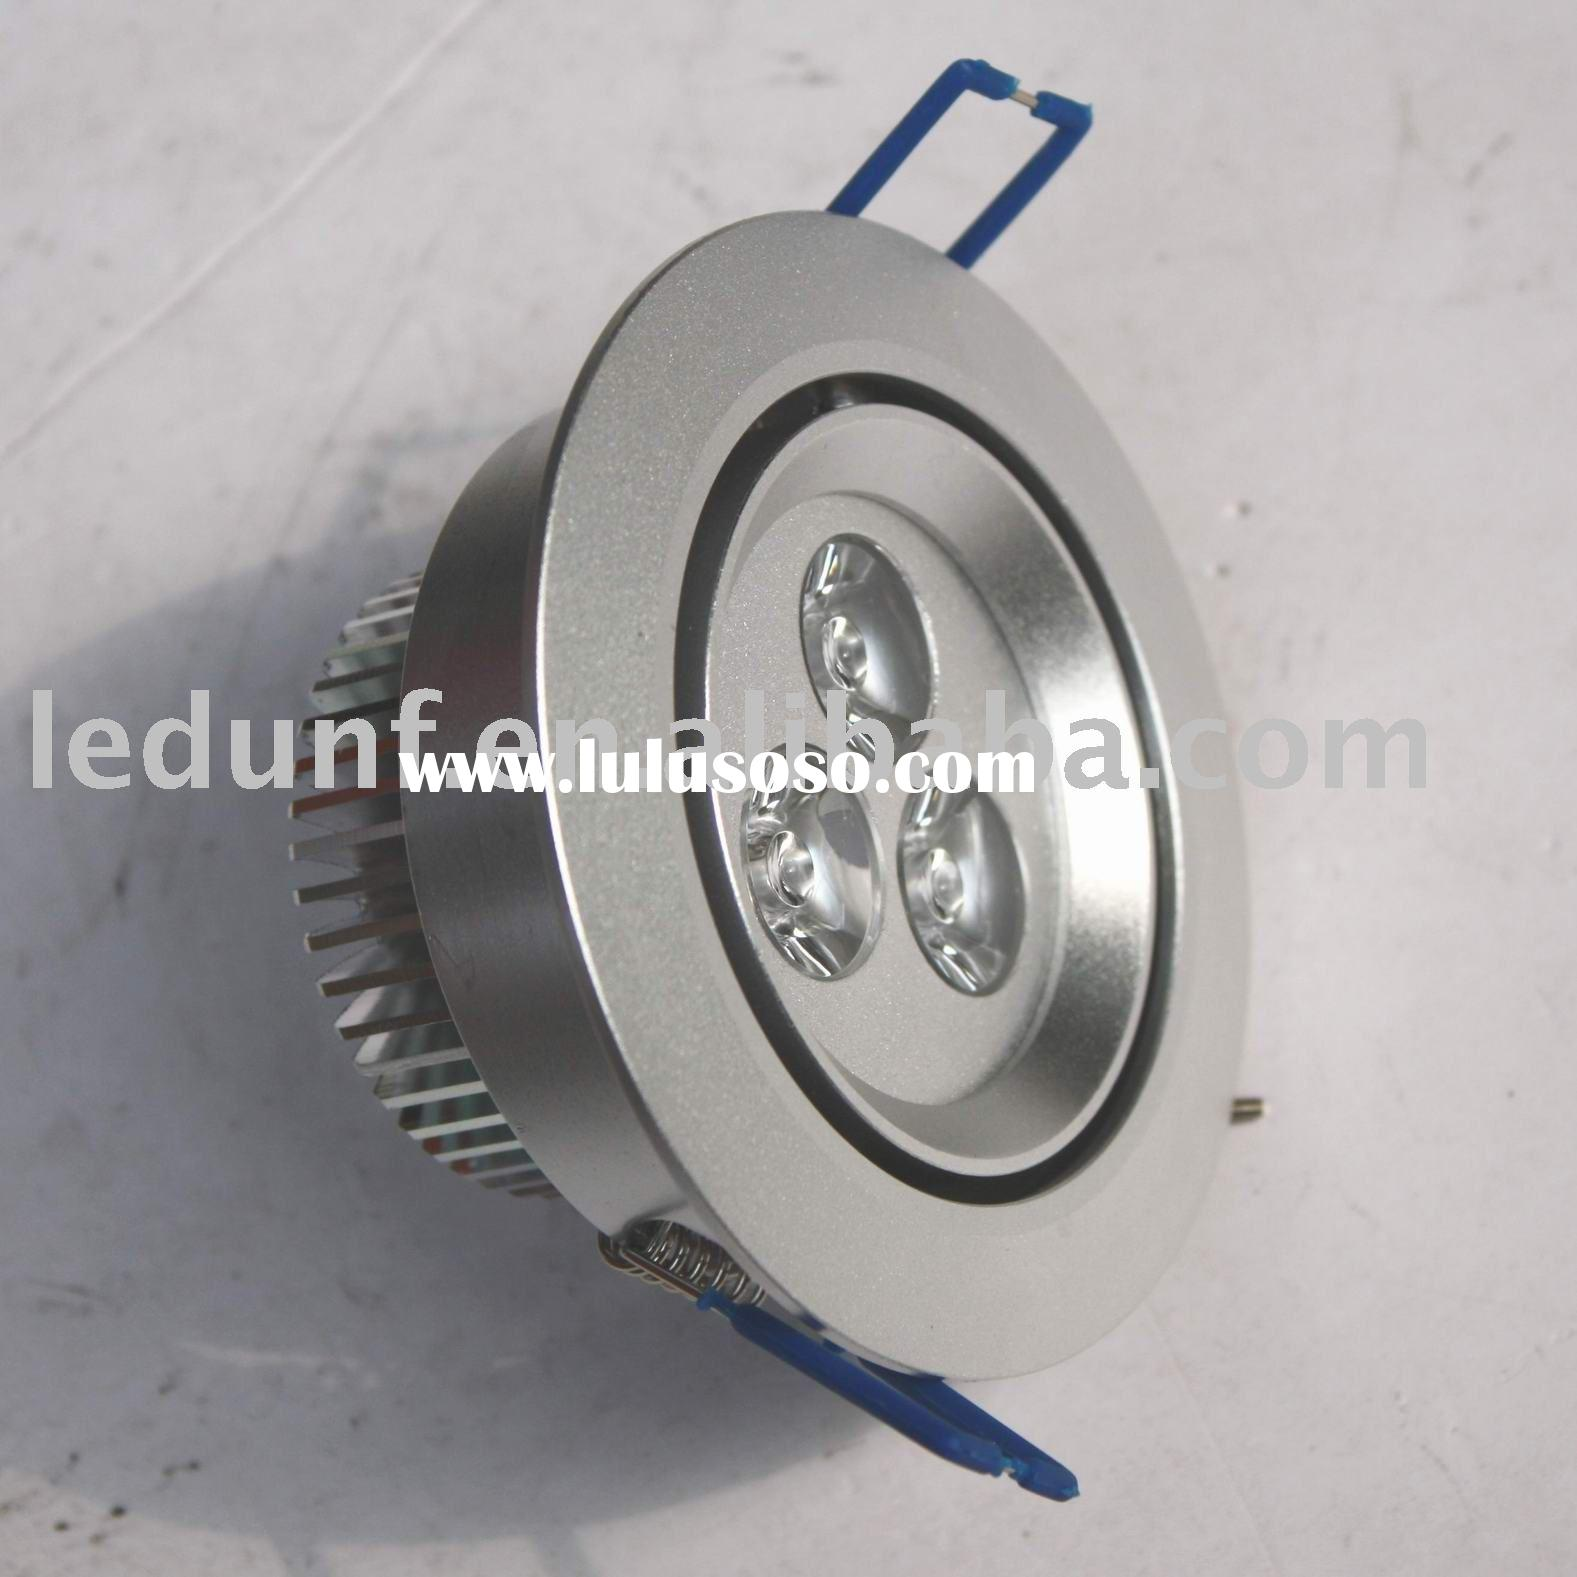 LED ceiling light/LED downlight/LED indoor light